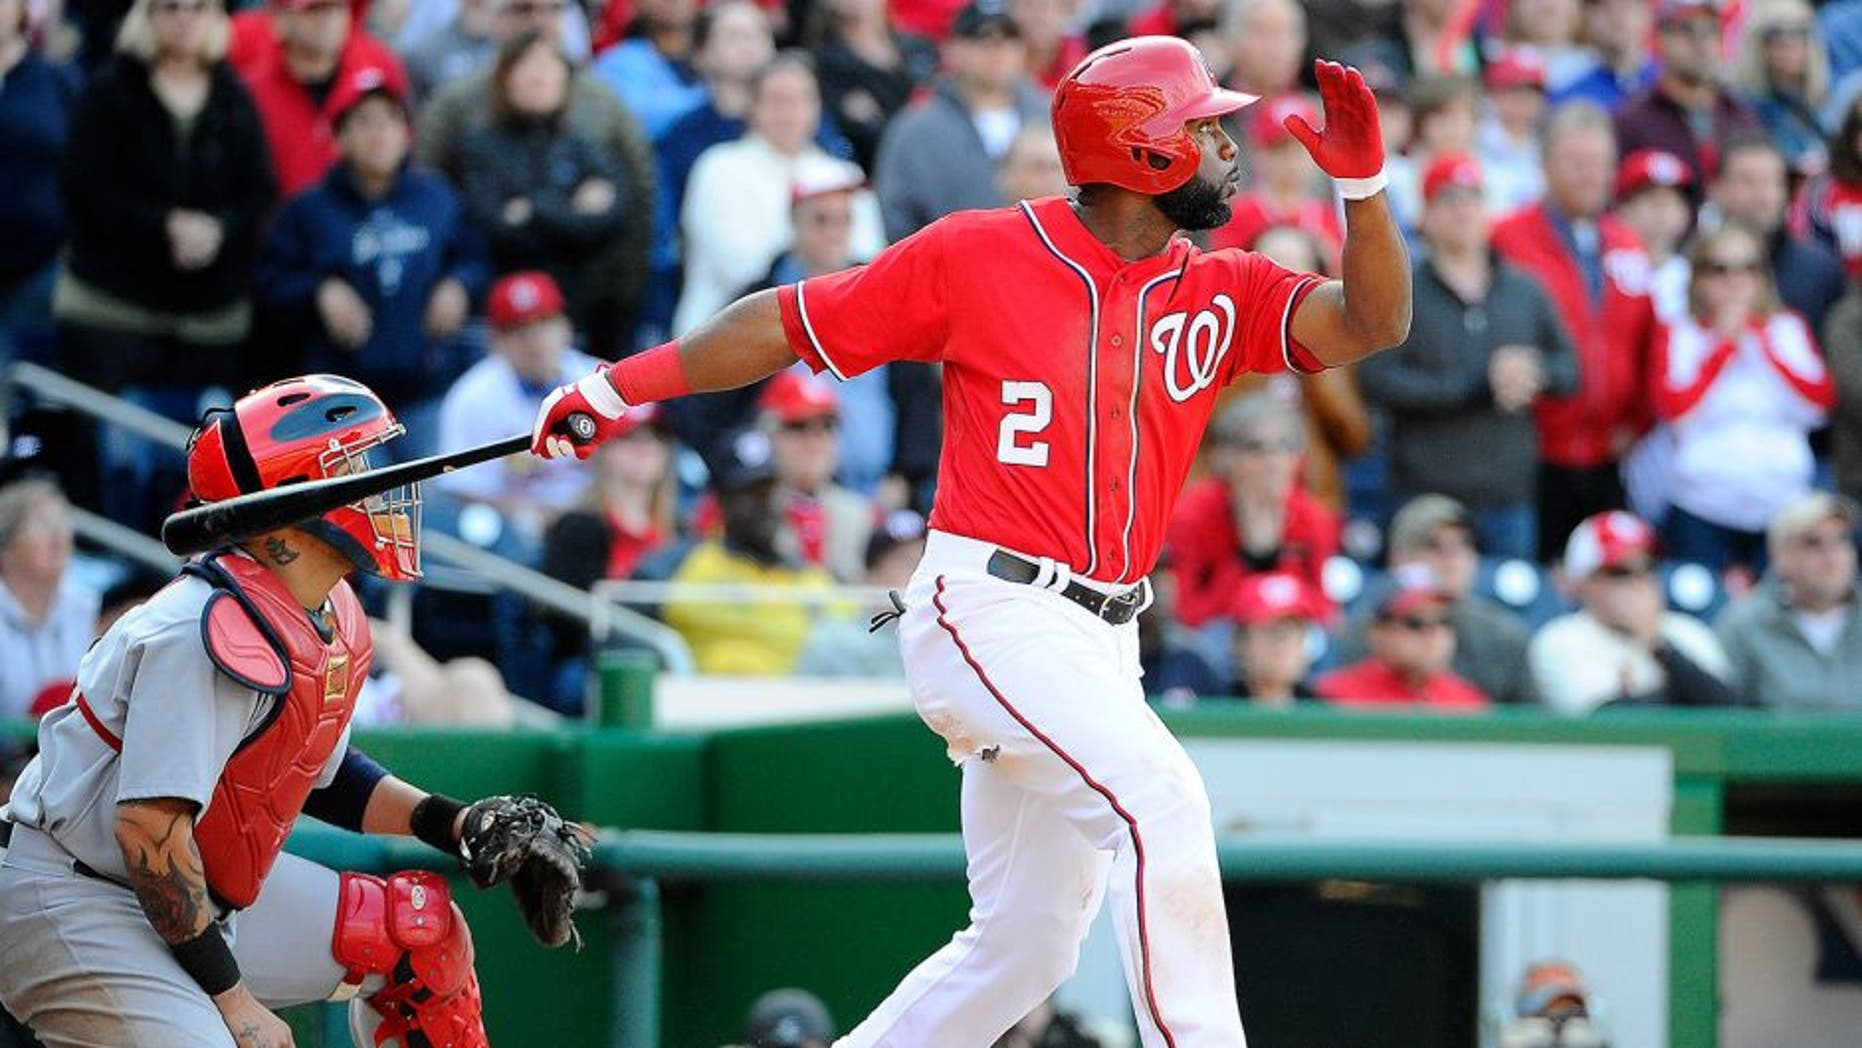 Apr 20, 2014; Washington, DC, USA; Washington Nationals center fielder Denard Span (2) hits a walk off RBI sacrifice fly against the St. Louis Cardinals during the ninth inning at Nationals Park. The Nationals won 3-2. Mandatory Credit: Brad Mills-USA TODAY Sports